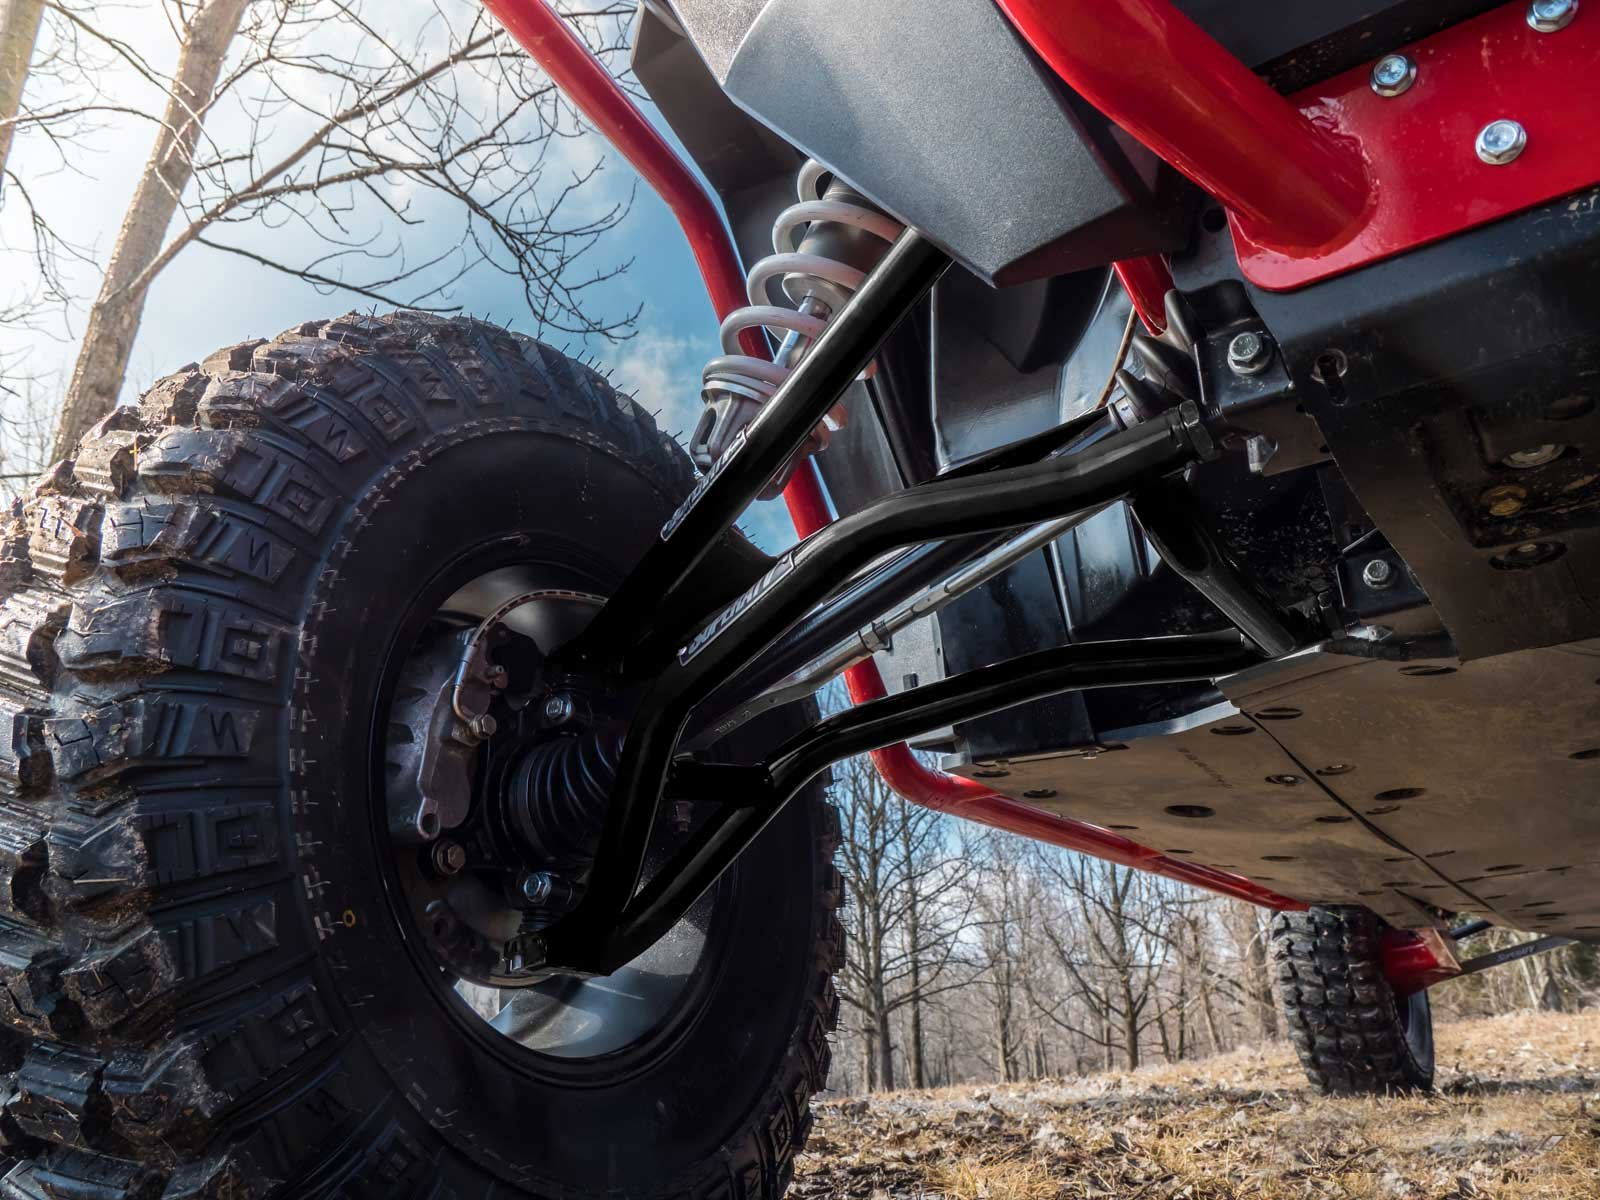 SuperATV High Clearance A-Arms for Polaris RZR XP 1000 / XP 4 1000 (2014+) - Upper and Lower Arms - Black by SuperATV.com (Image #4)